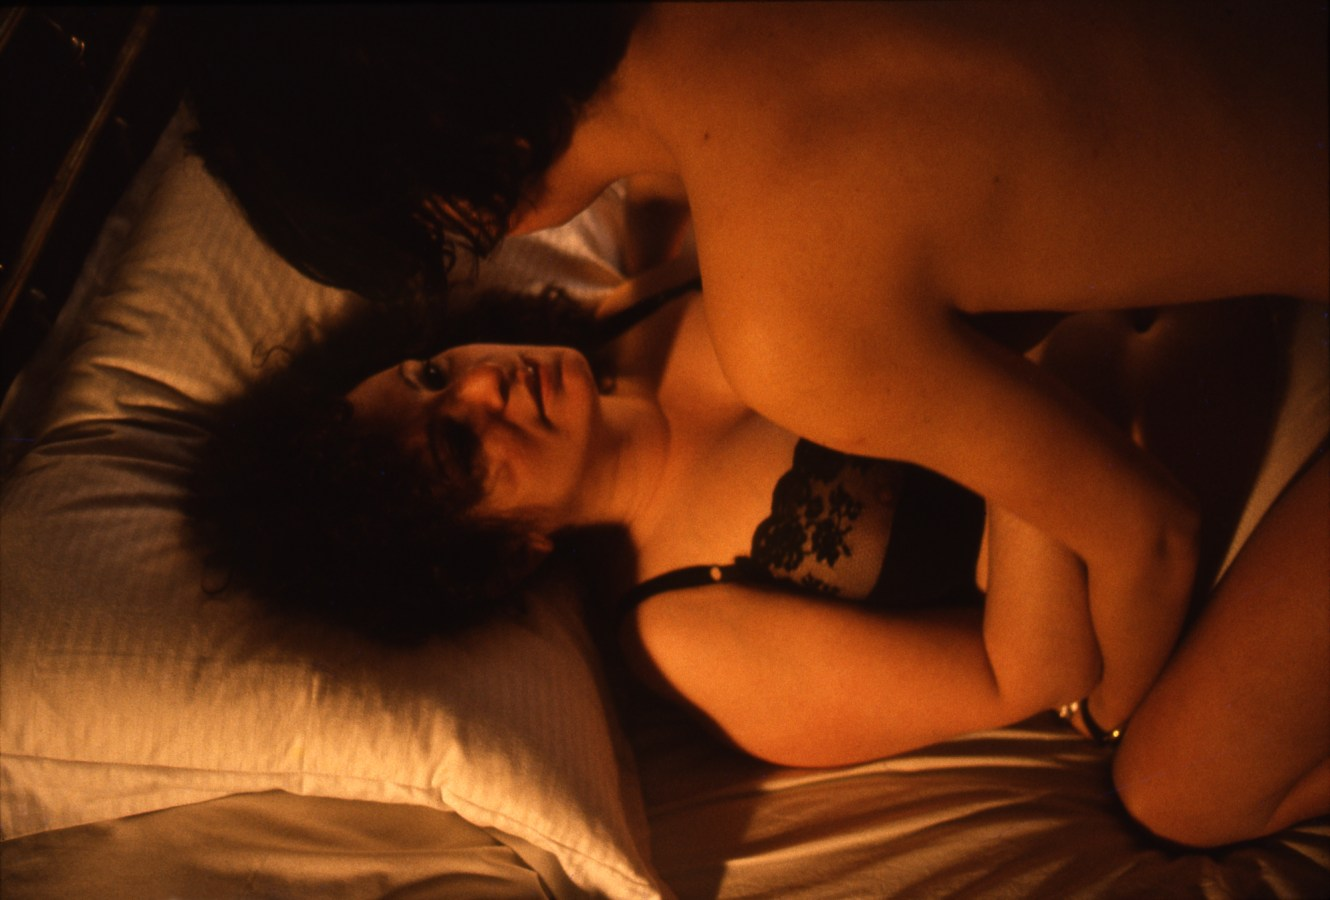 Color photograph of a woman lying in bed looking up from beneath her partner